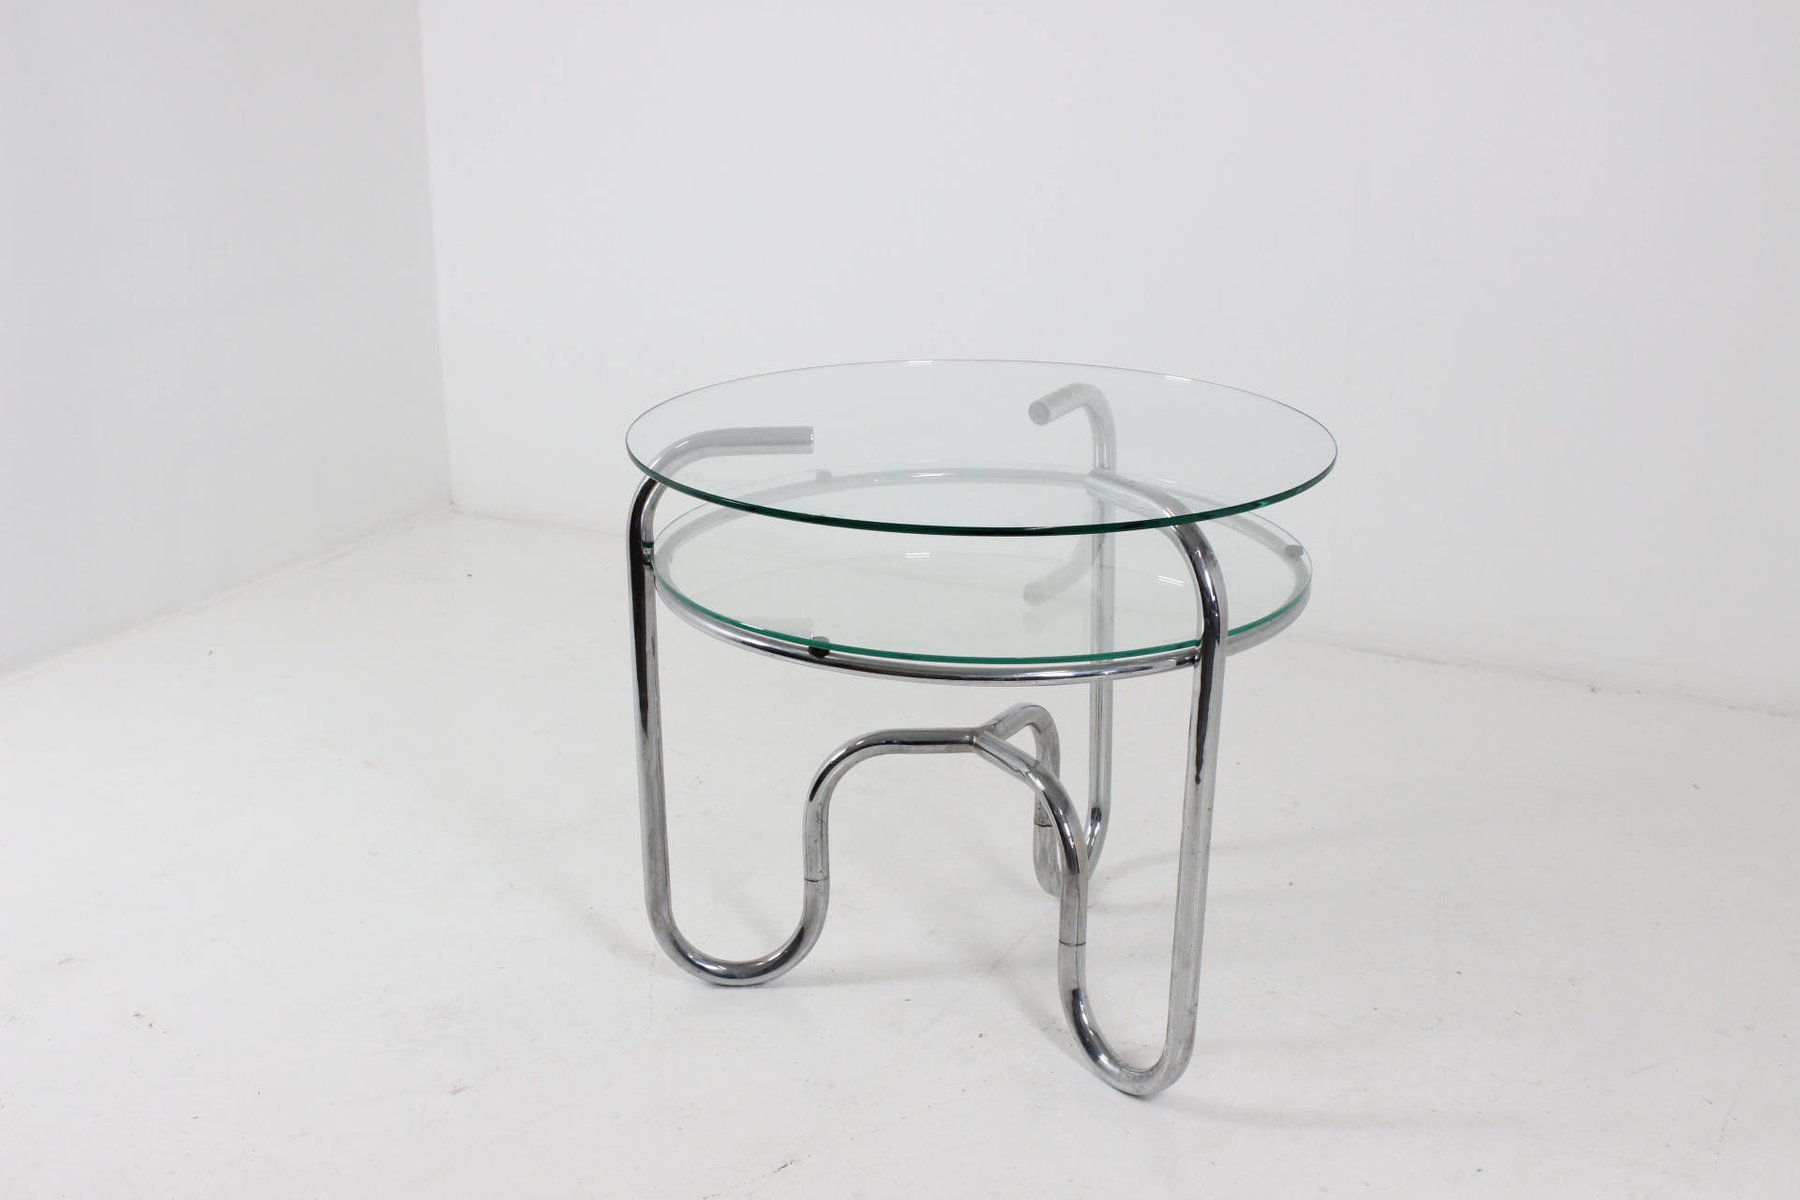 Attractive Vintage Czech Tubular Steel Chrome And Glass Table, 1930s For Sale At Pamono